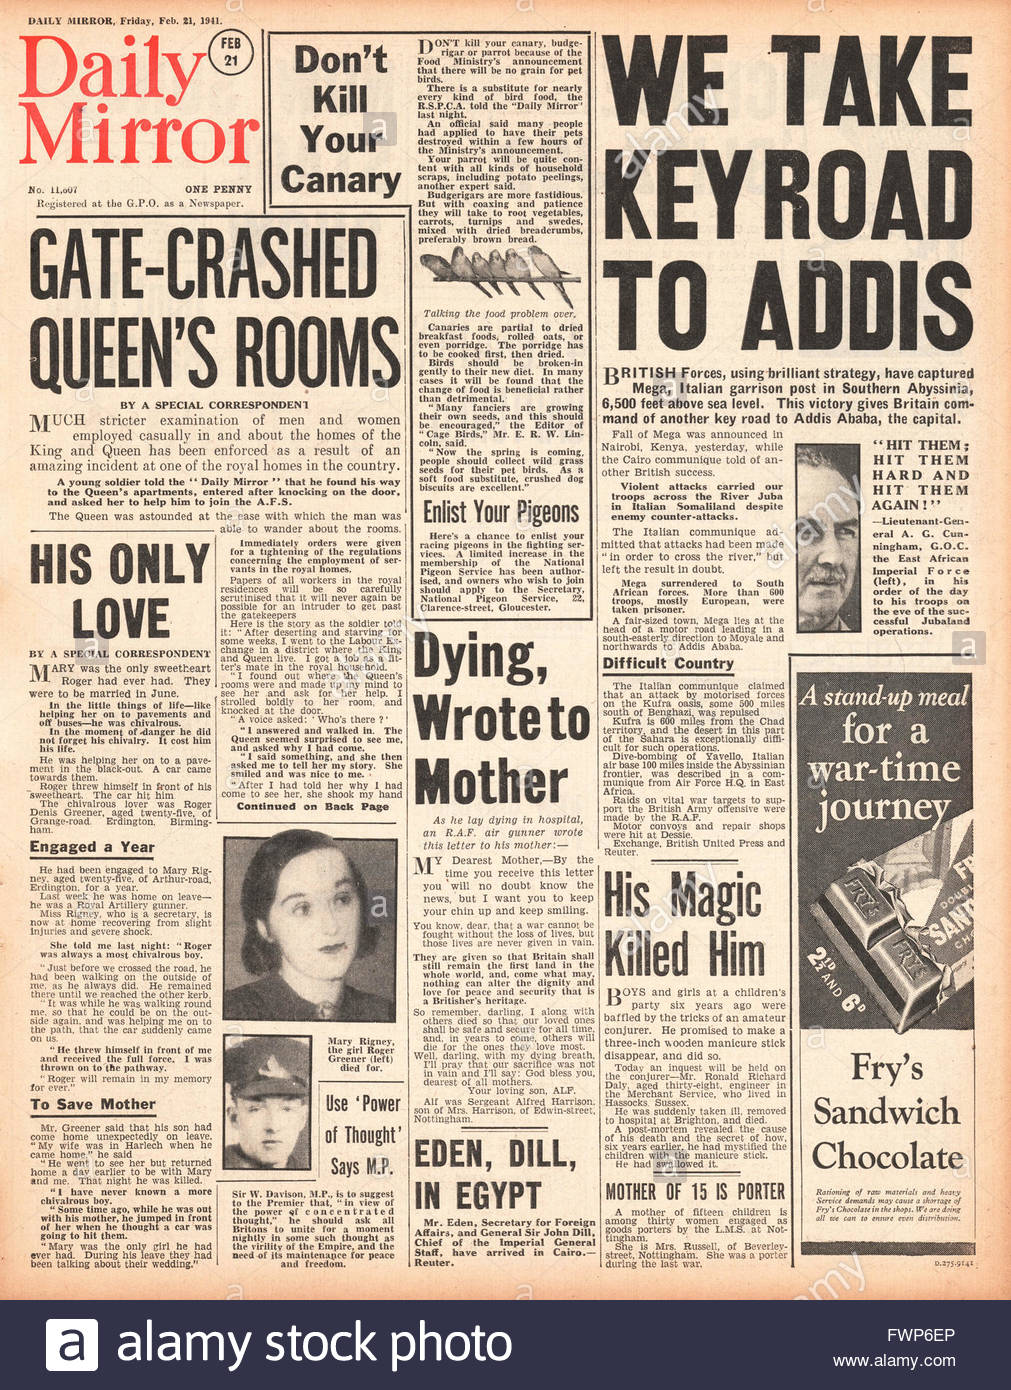 1941 front page  Daily Mirror British Forces advance on Addis Ababa and British Soldier enters the Queens apartment - Stock Image